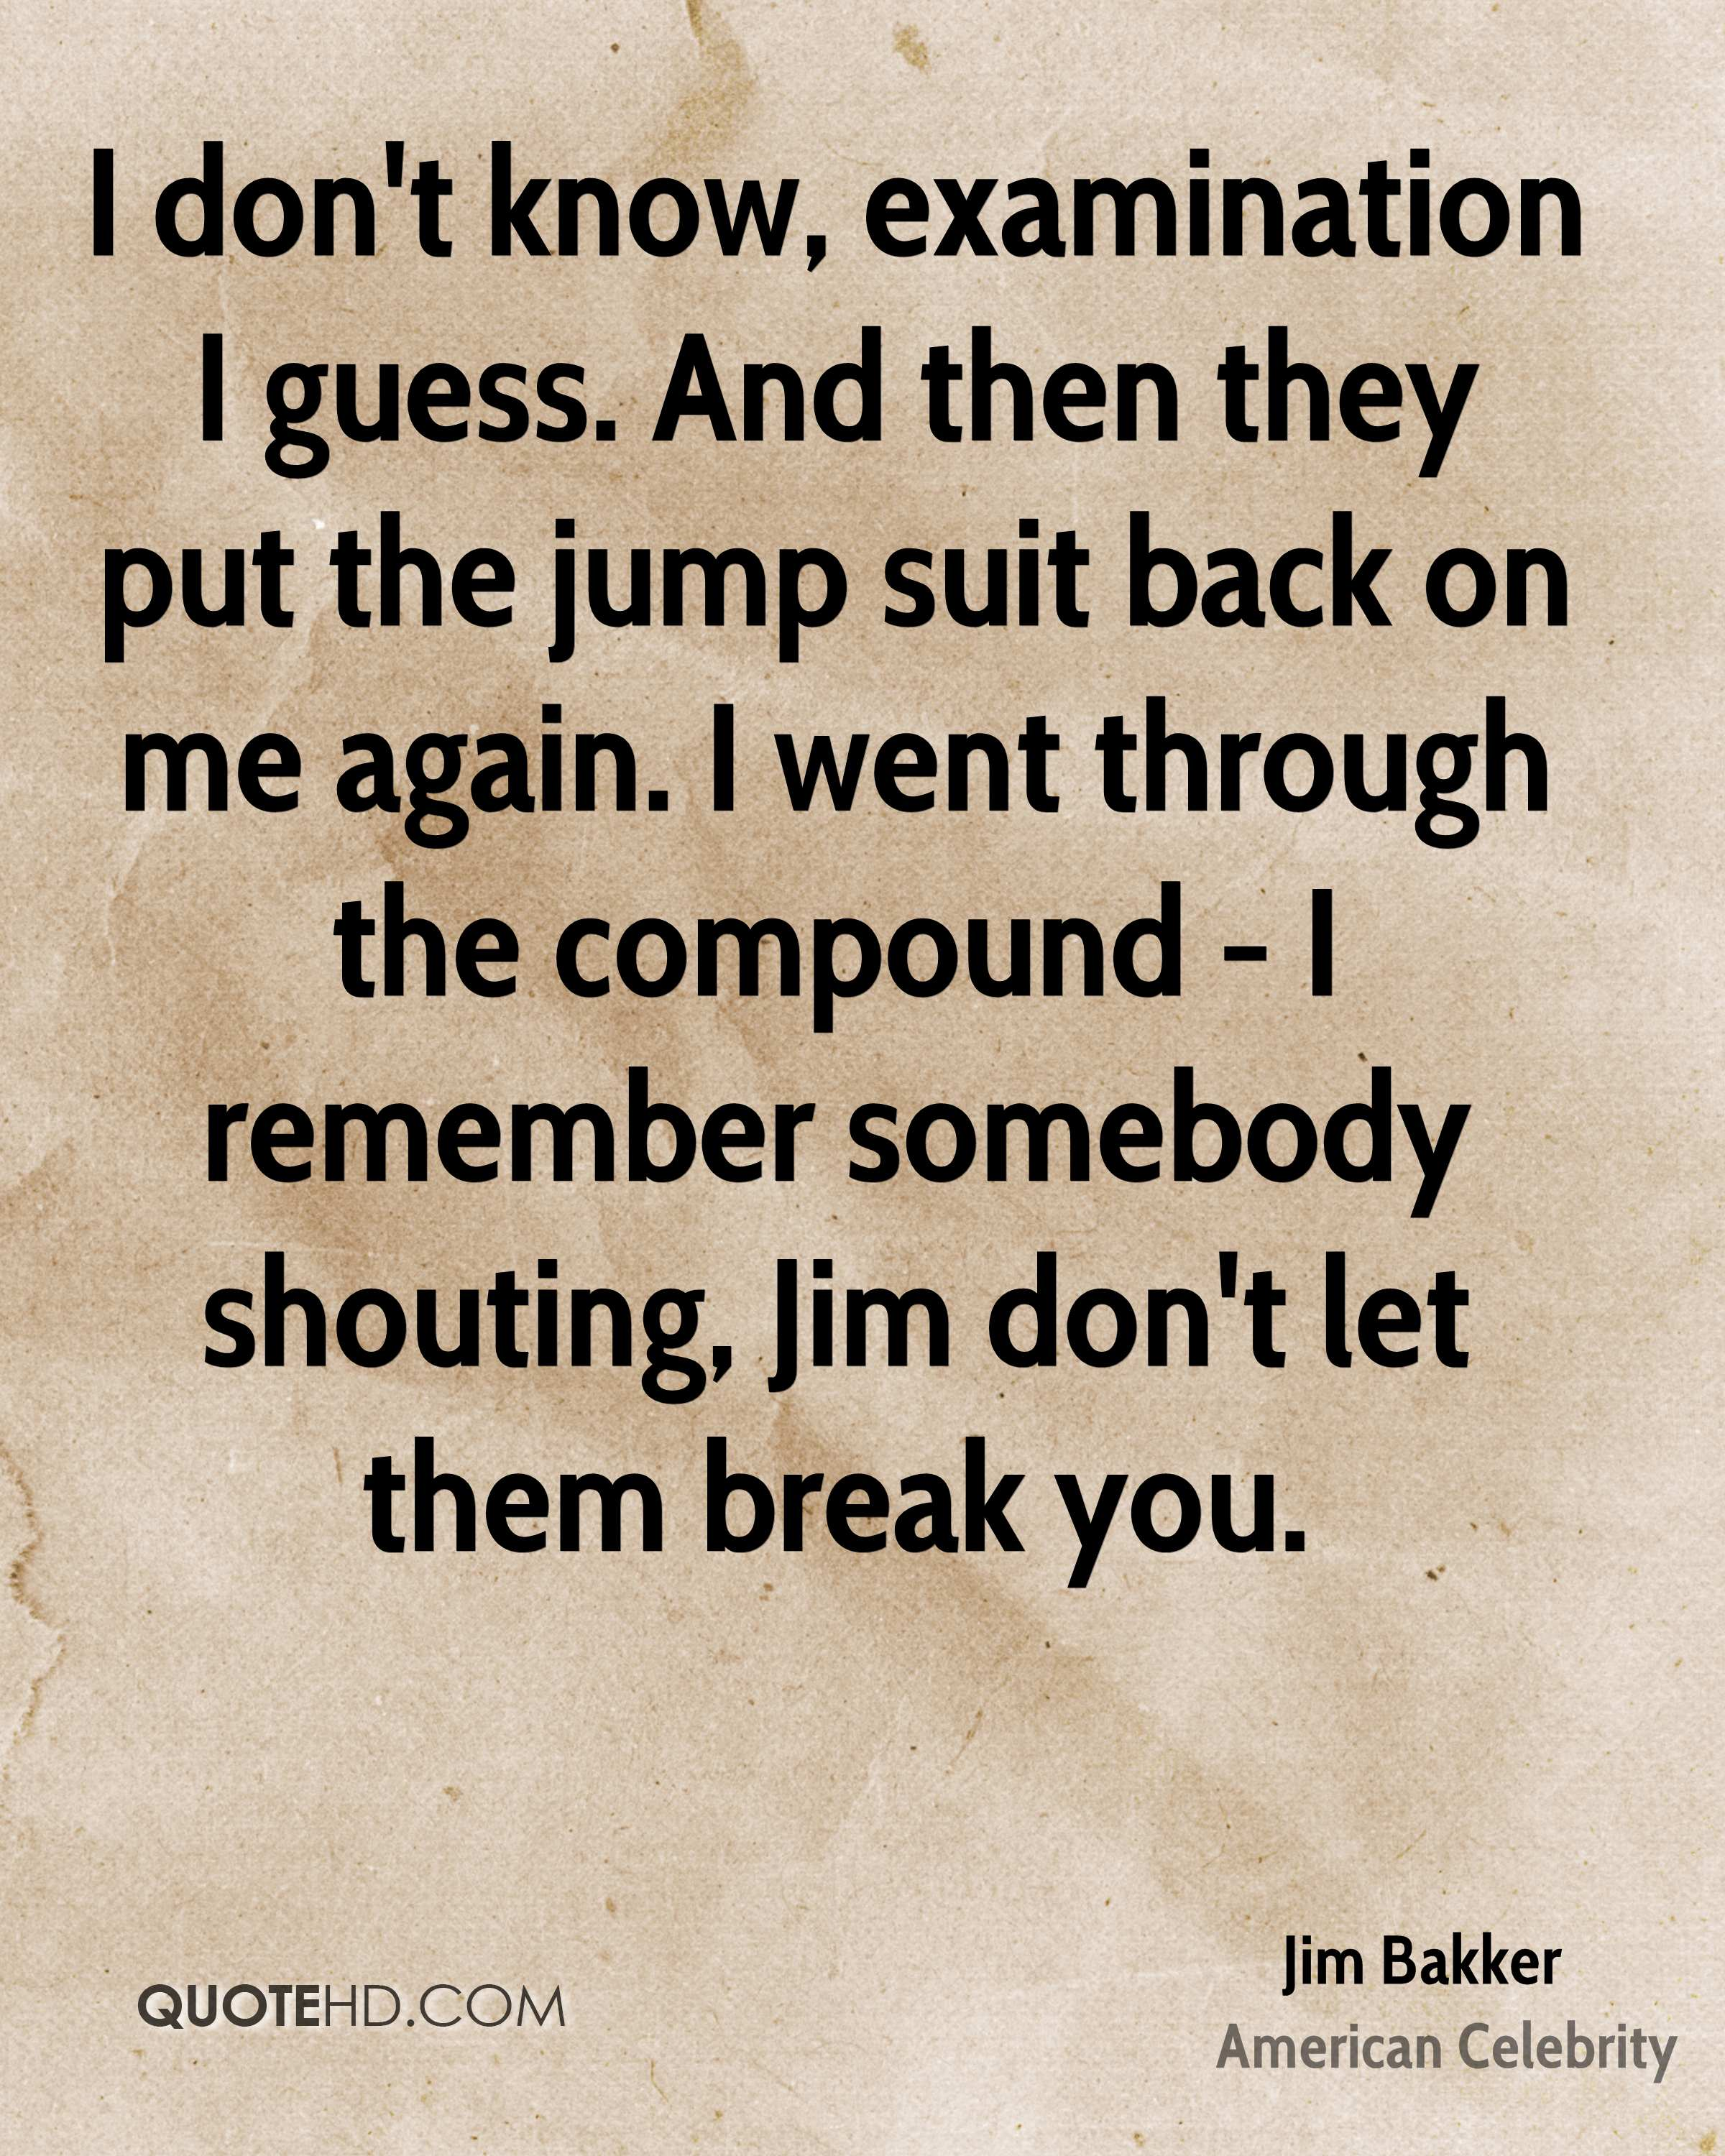 I don't know, examination I guess. And then they put the jump suit back on me again. I went through the compound - I remember somebody shouting, Jim don't let them break you.